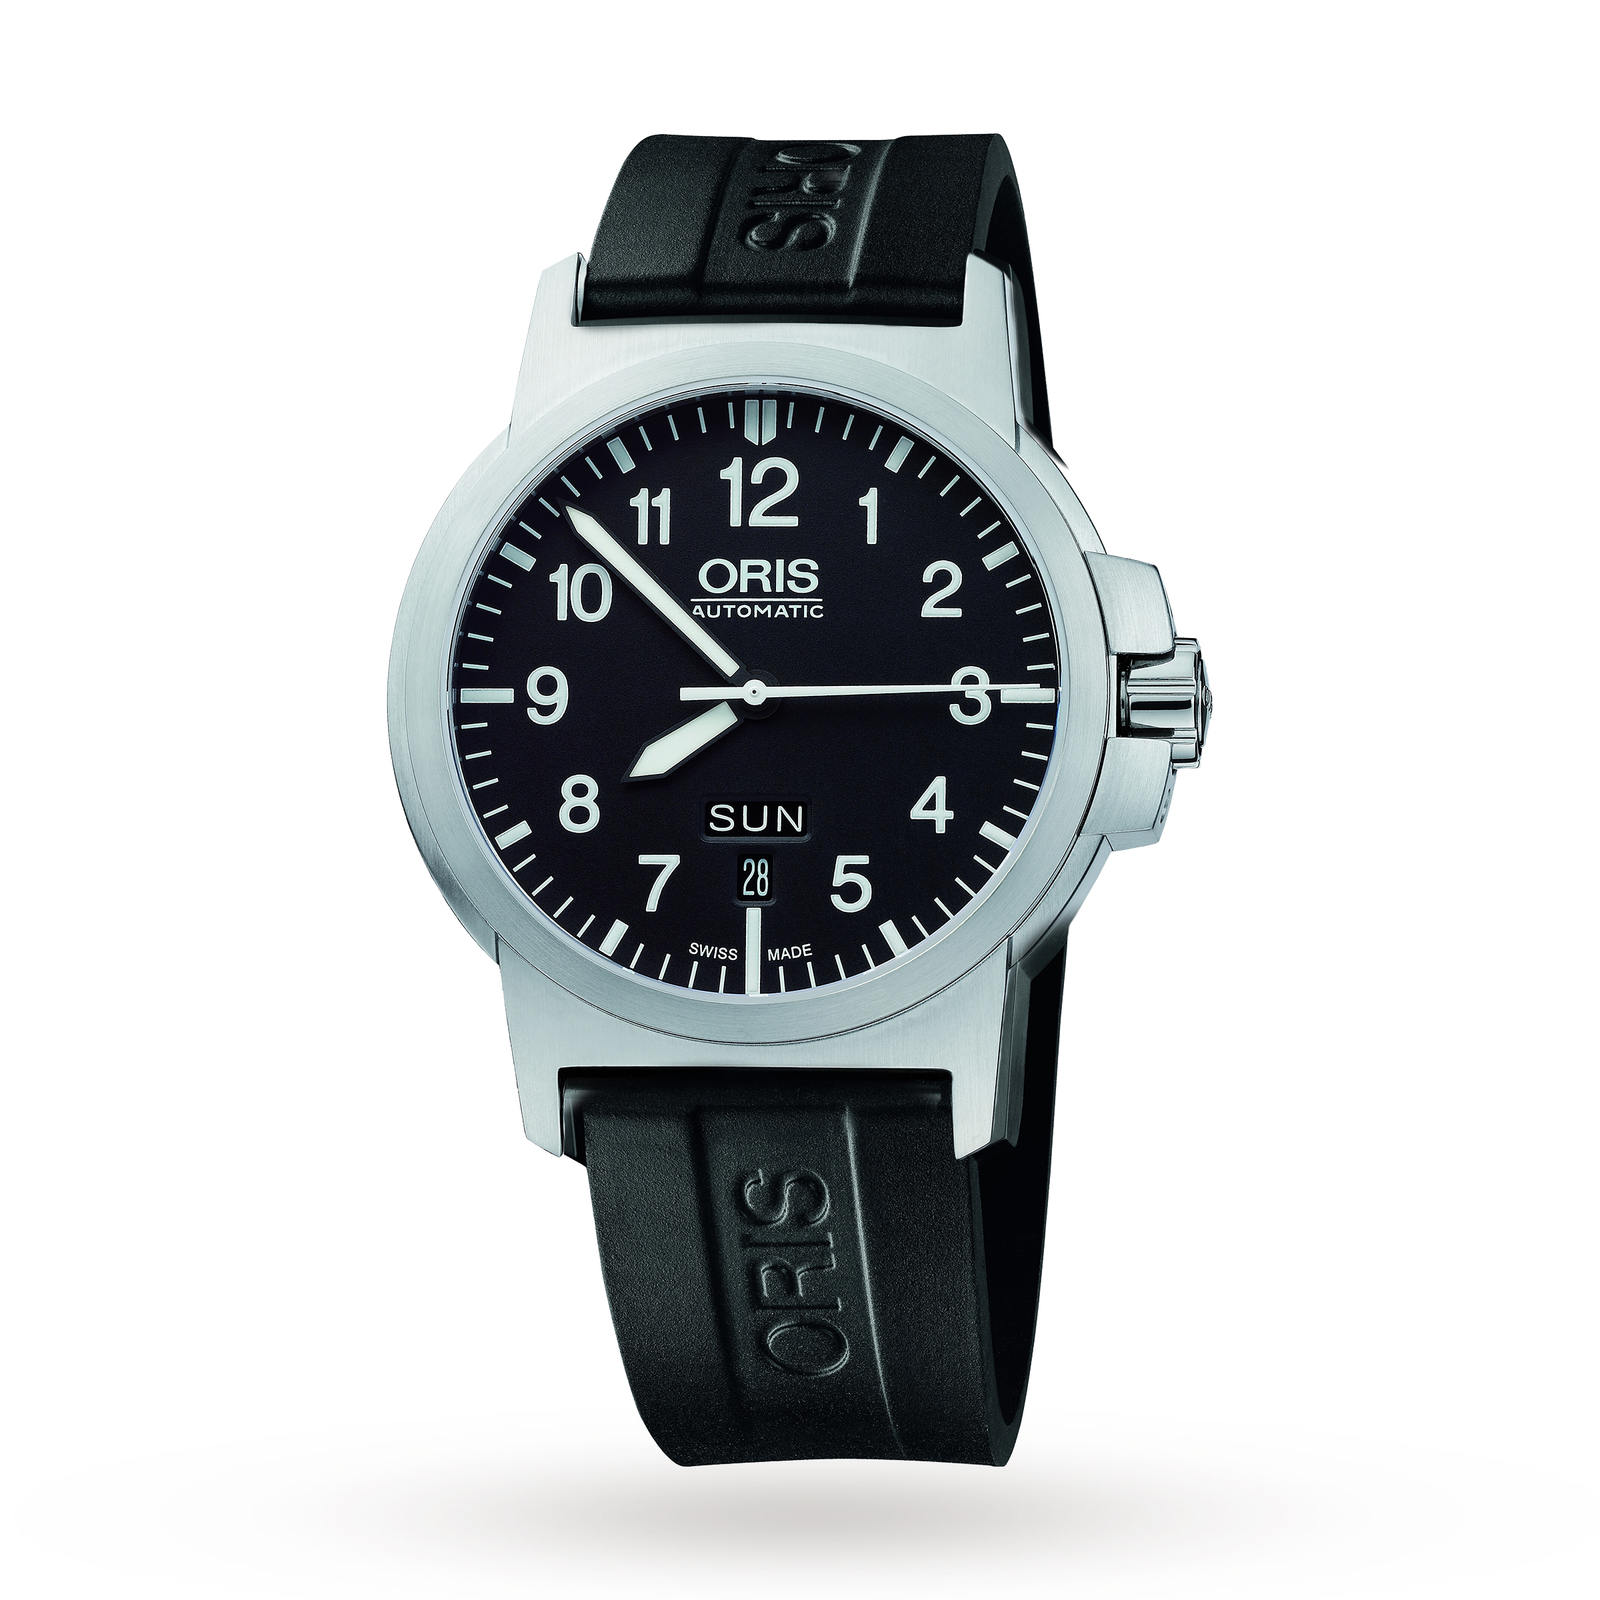 baselworld price limited oris edition crown big alarm propilot watches